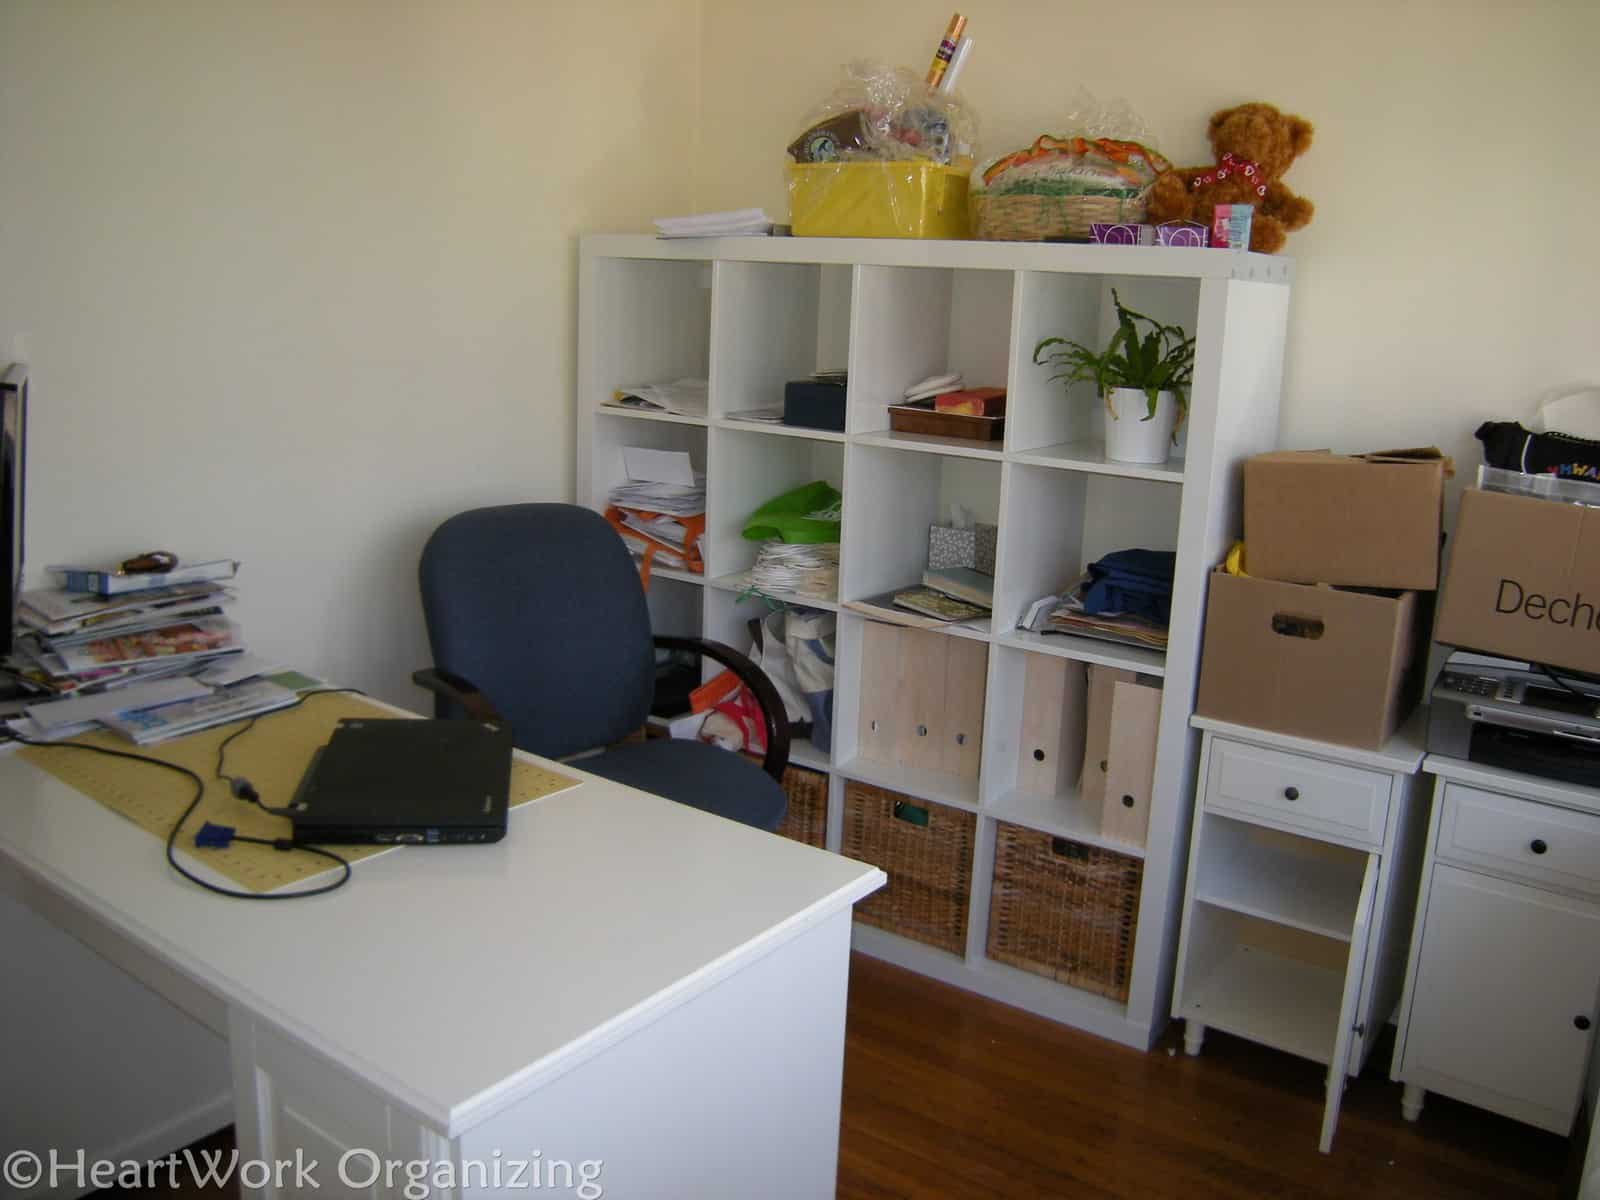 Home Office Makeover with Expedit Shelving IKEA HeartWorkOrgcom